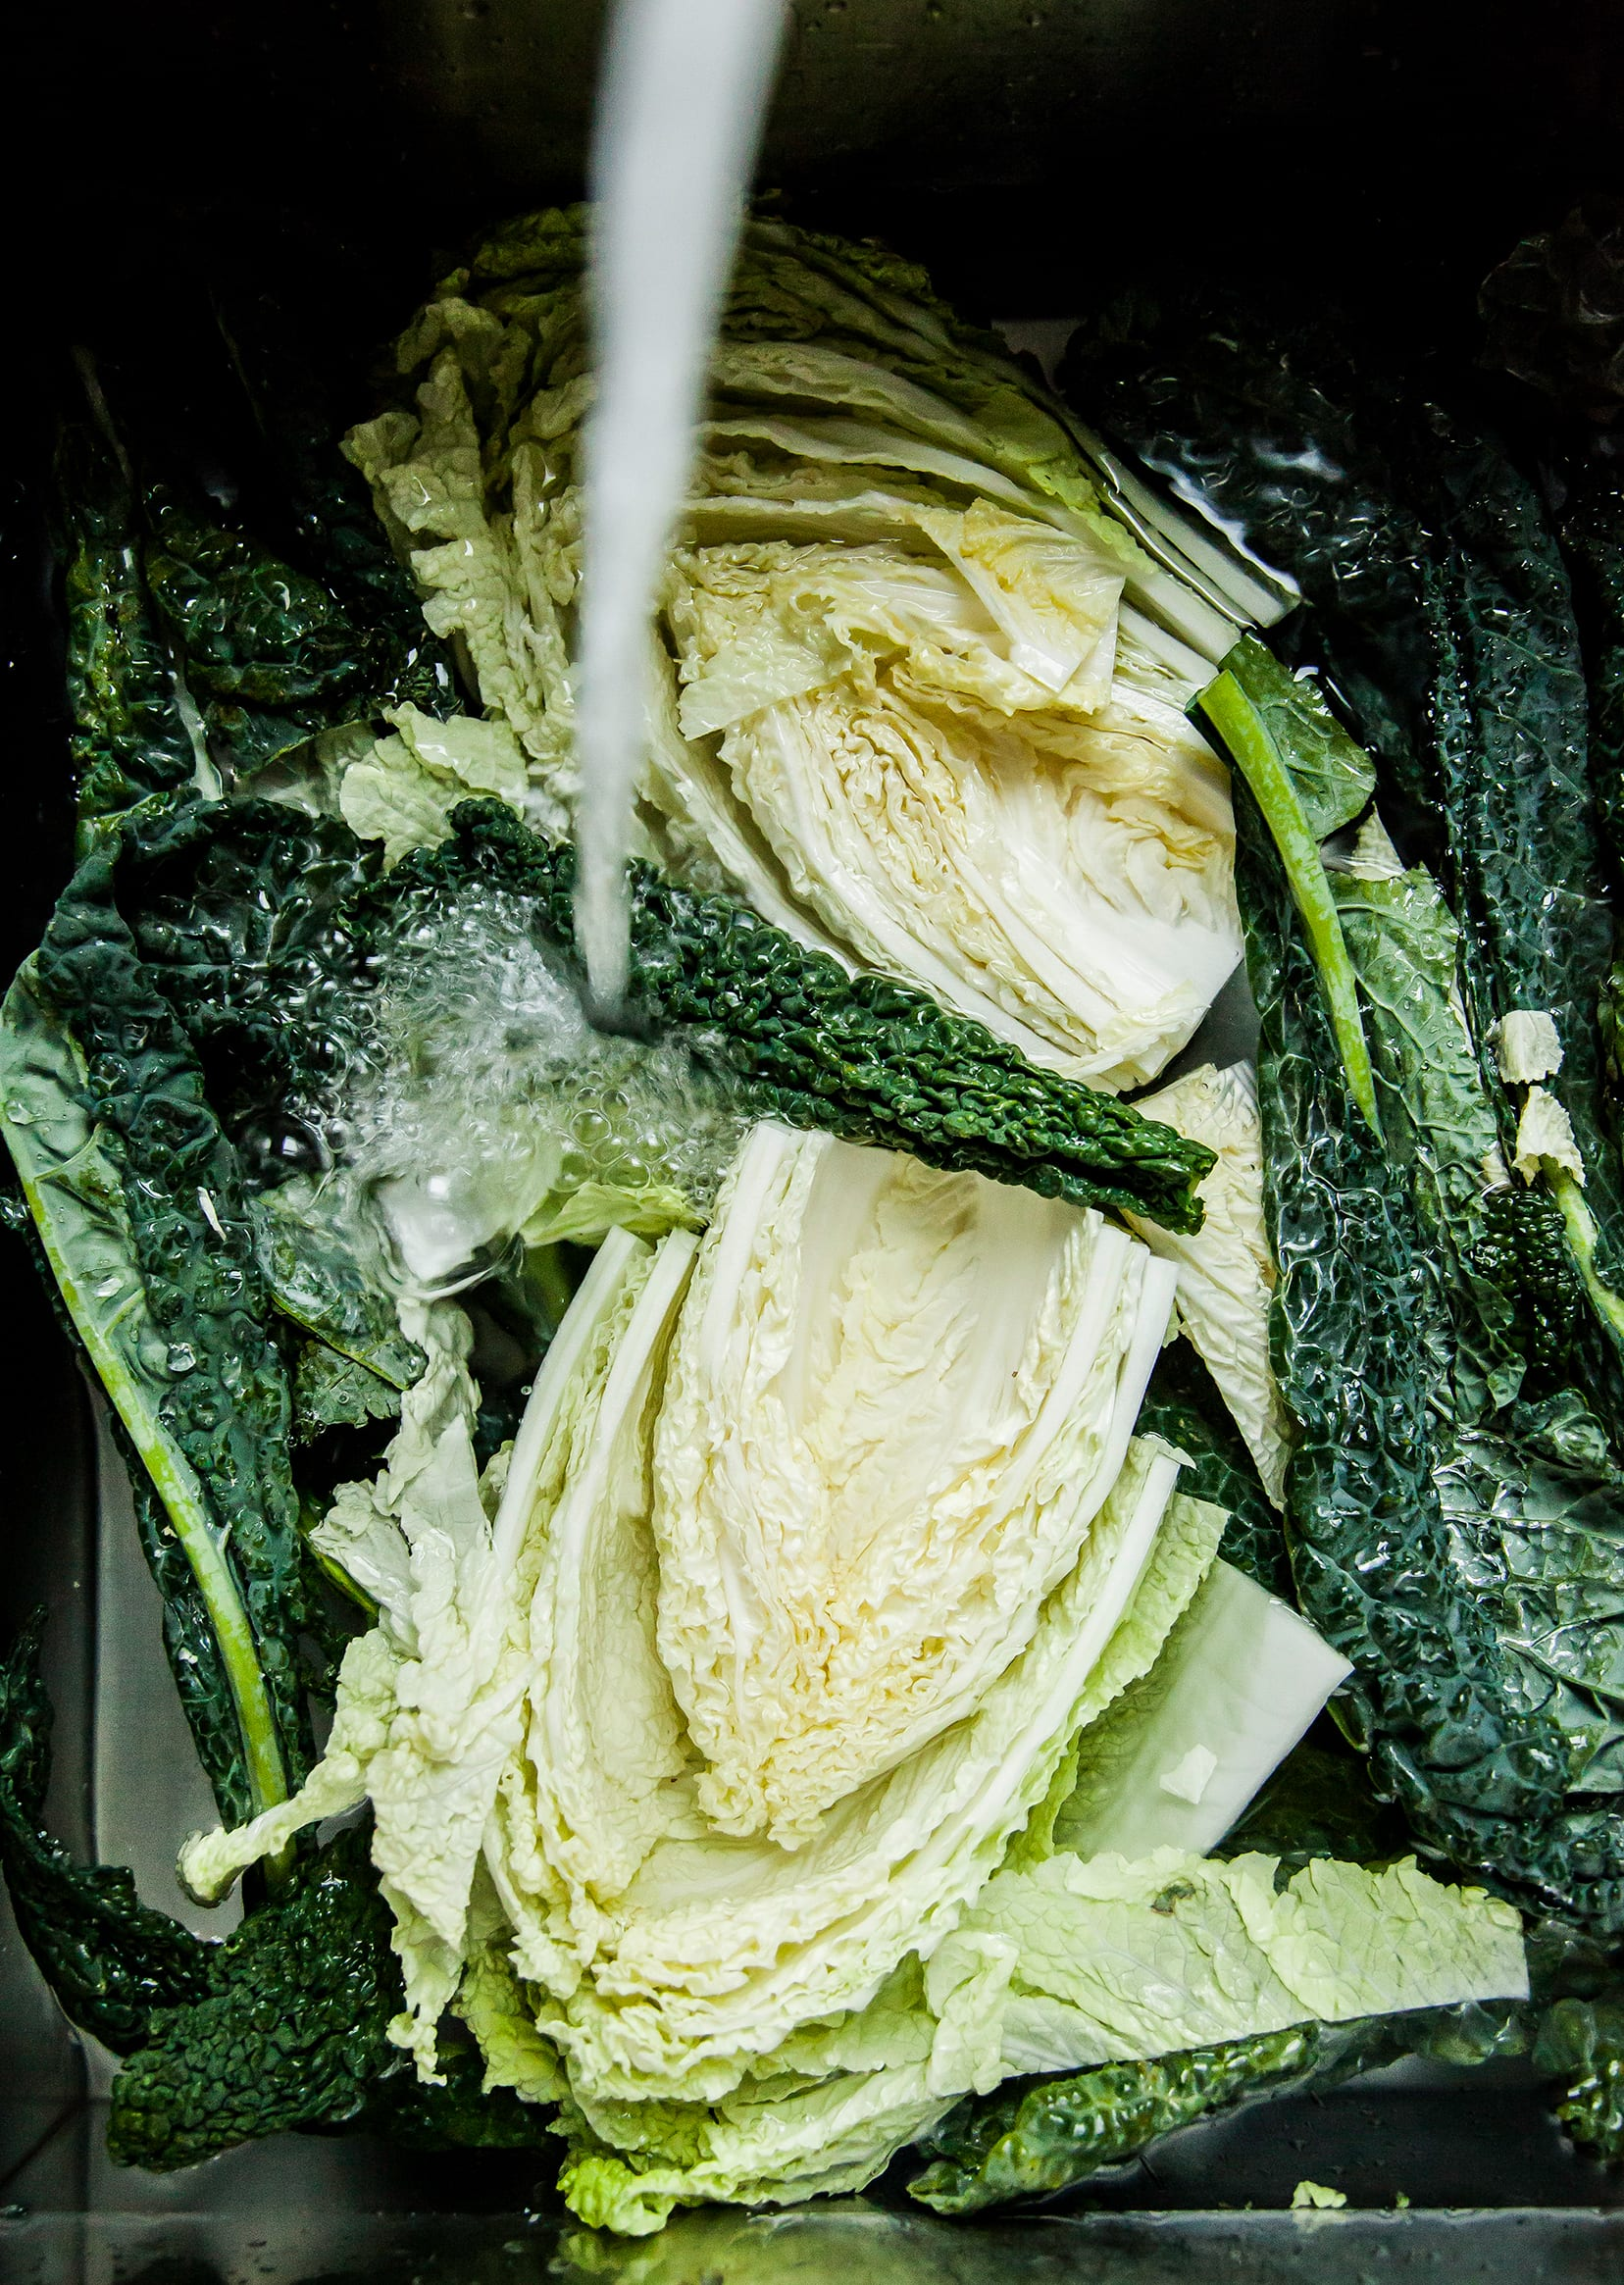 Image shows Napa cabbage and kale being washed in a sink.